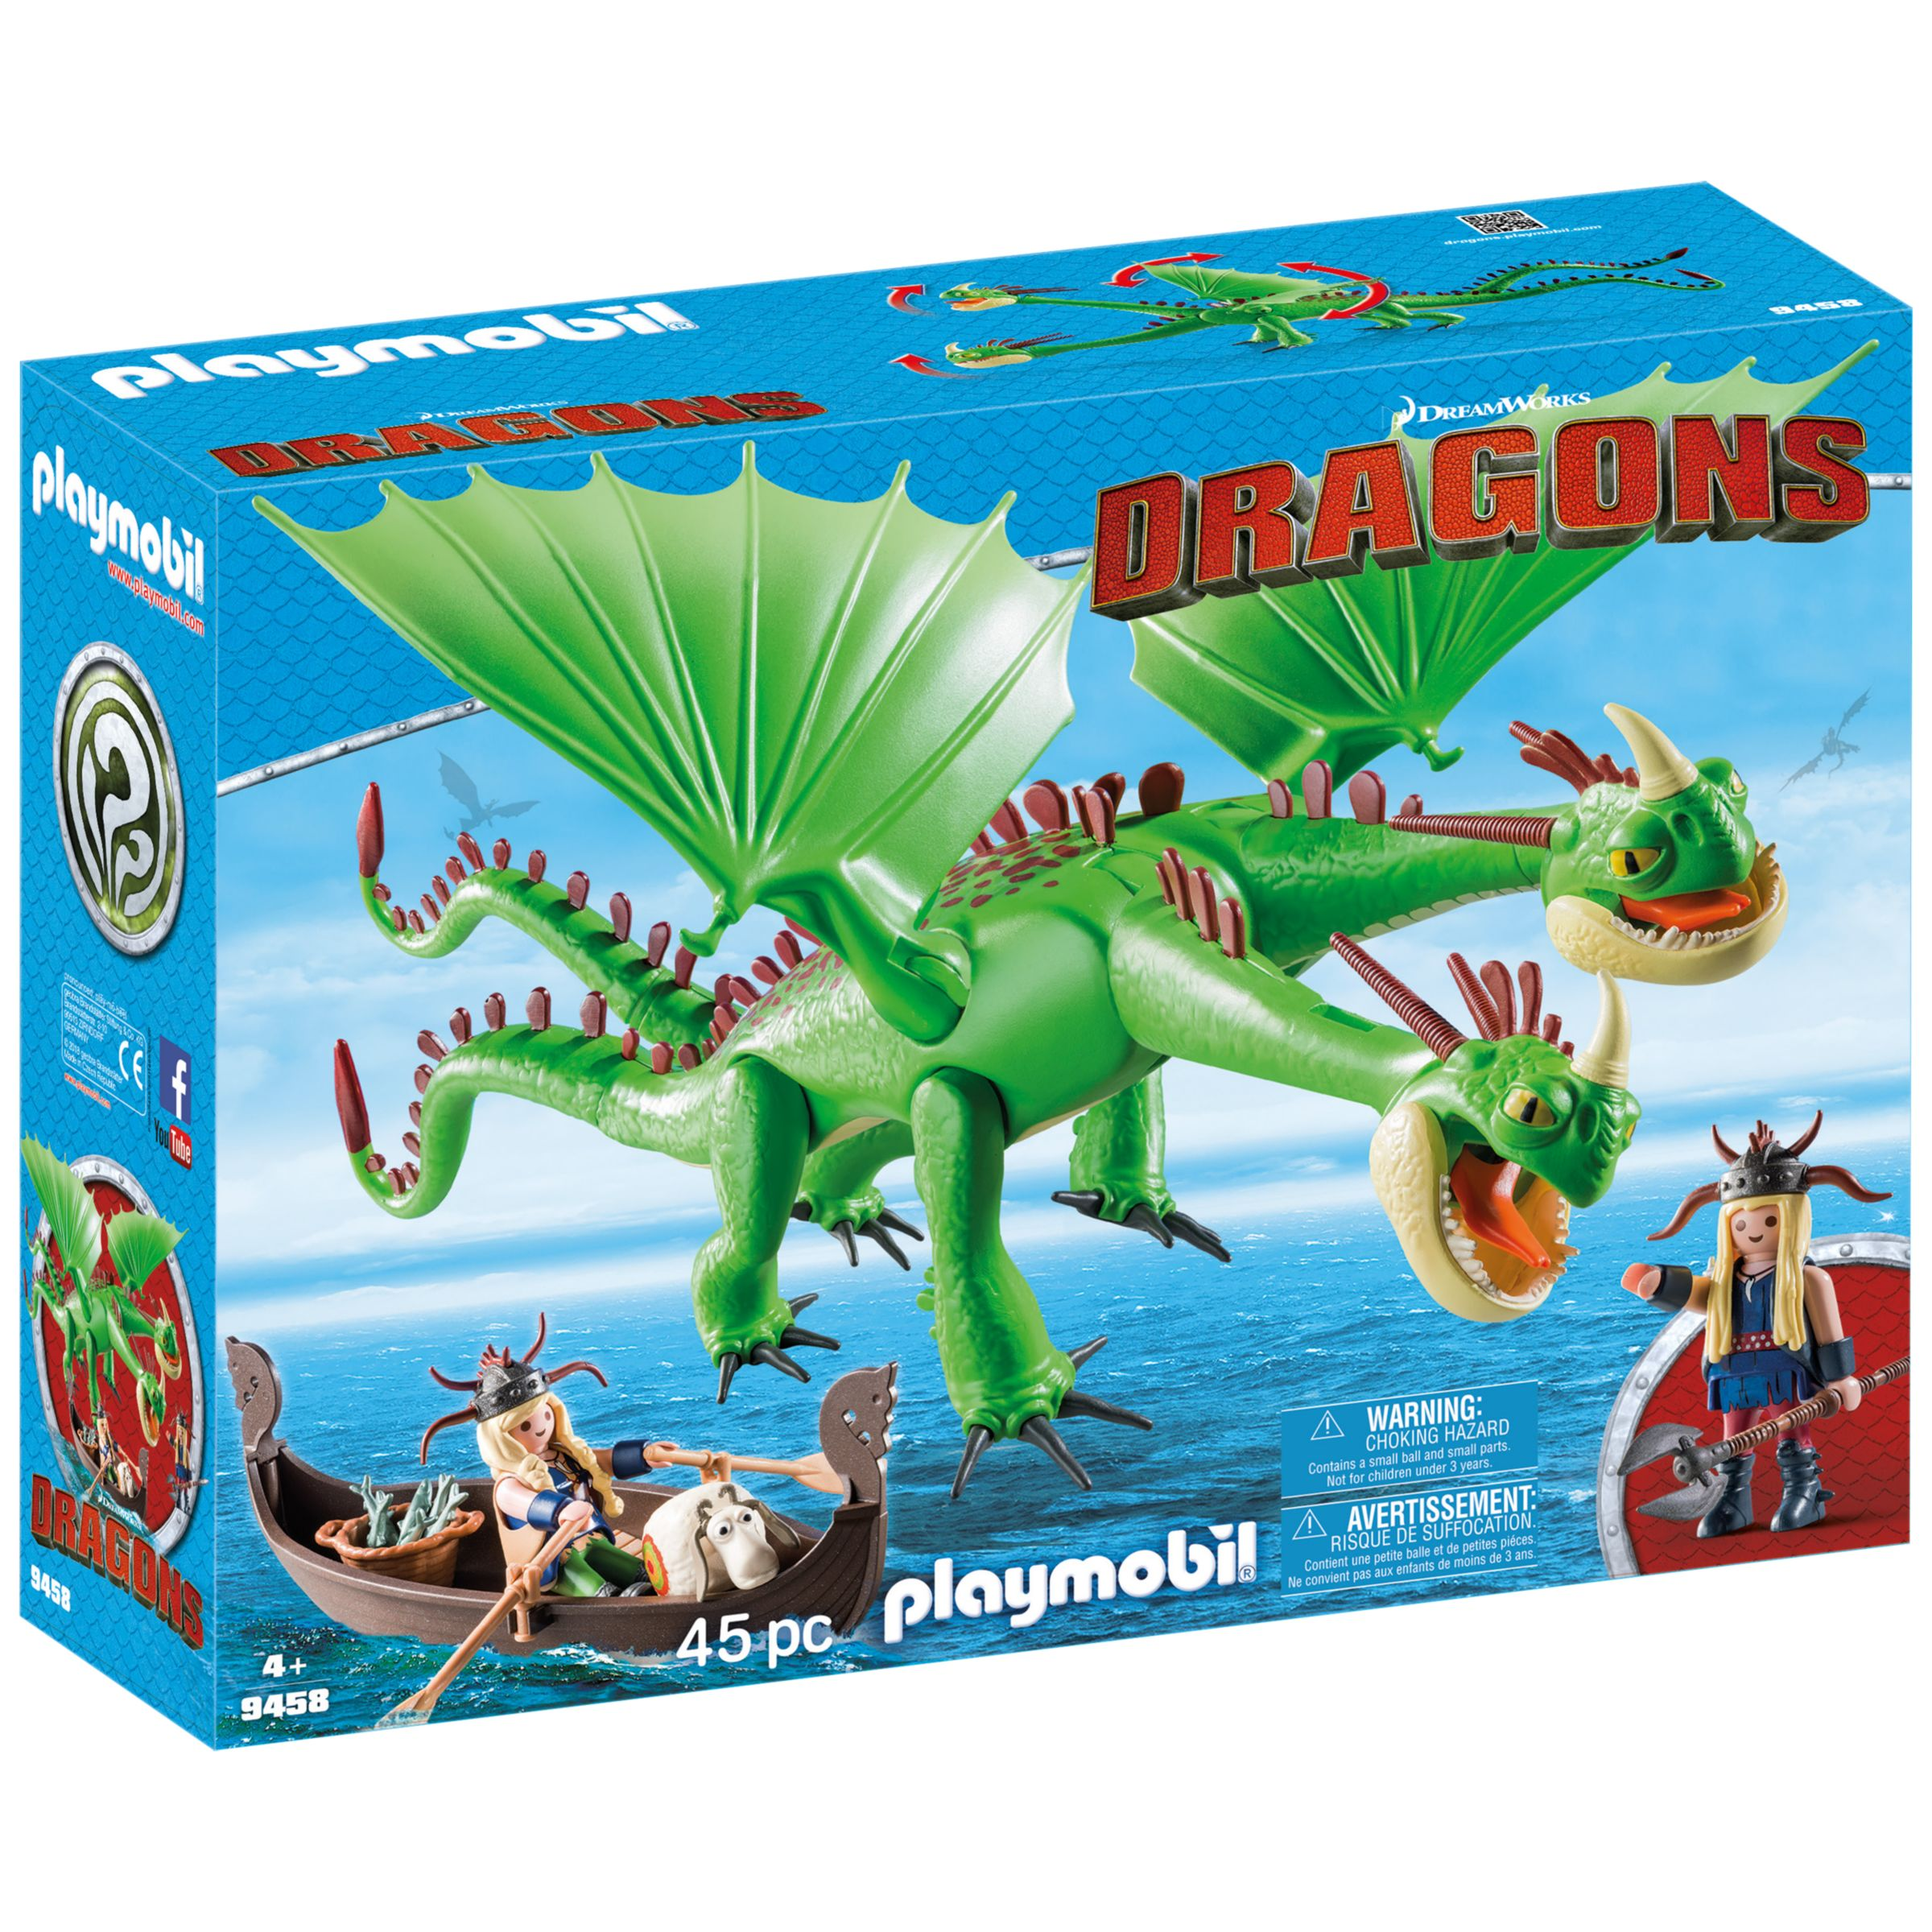 PLAYMOBIL Playmobil Dragons 9458 Ruffnut and Tuffnut with Barf and Belch Play Set